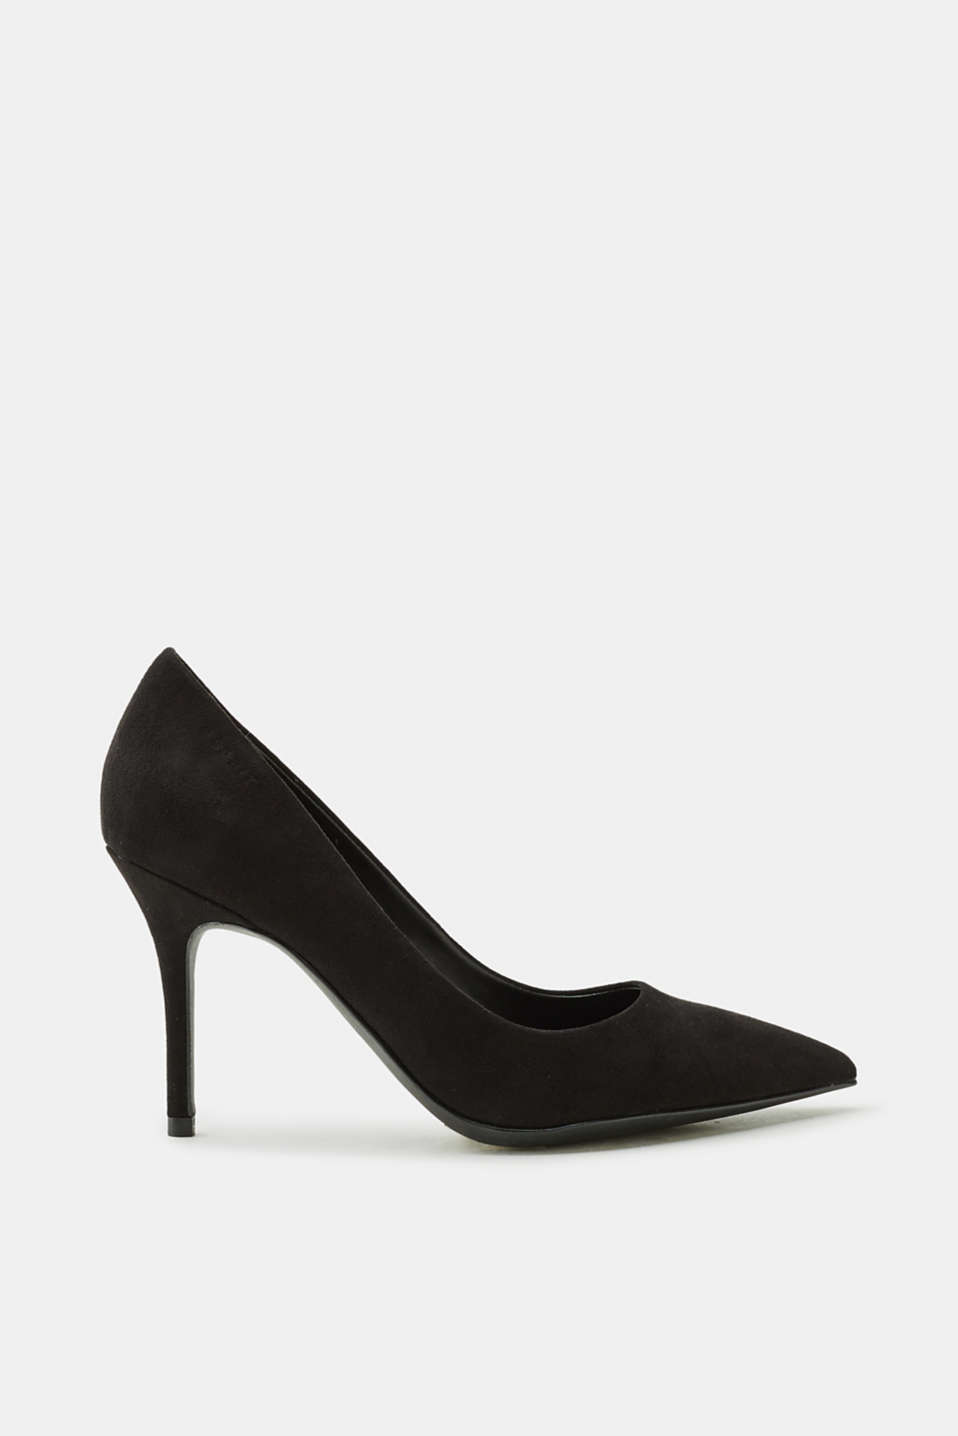 We love high heels! Whether with a business look or a little black dress – these court shoes are an elegant classic.